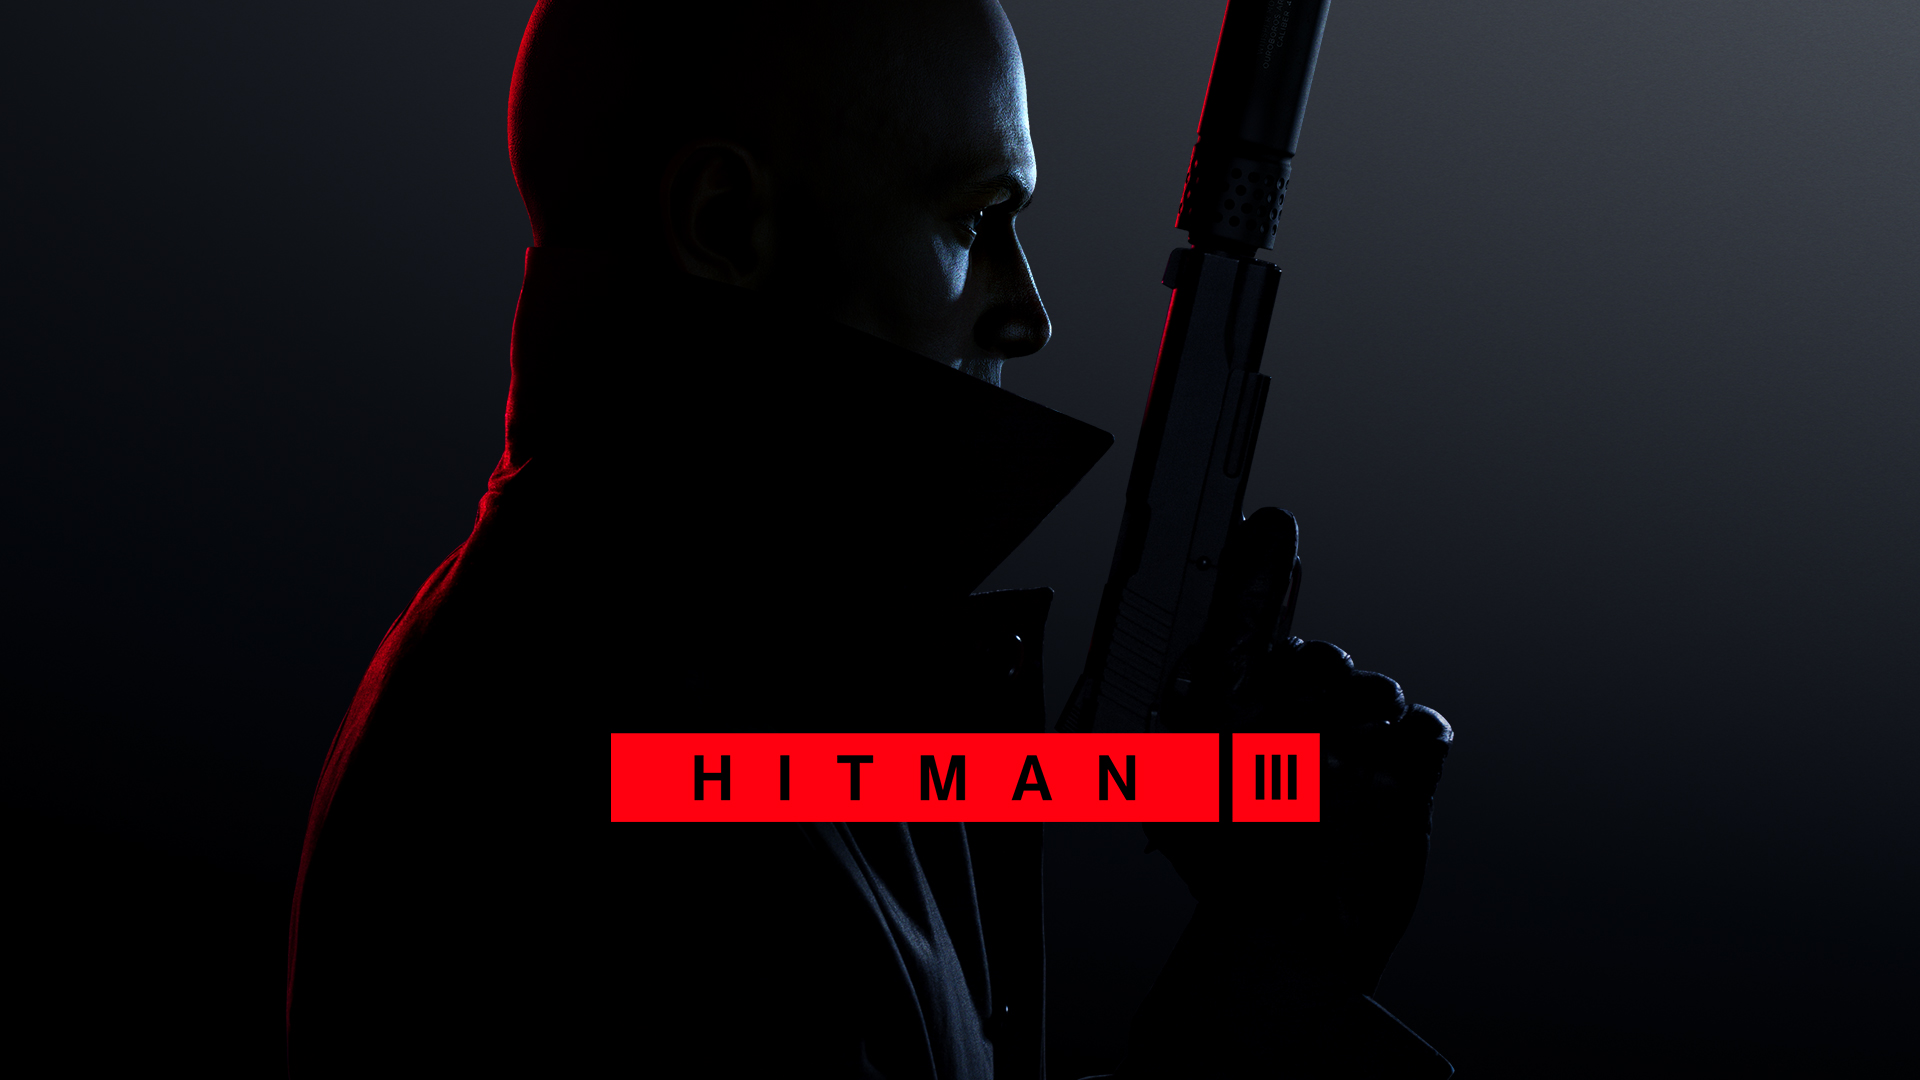 Hitman 3. What's new in the game?